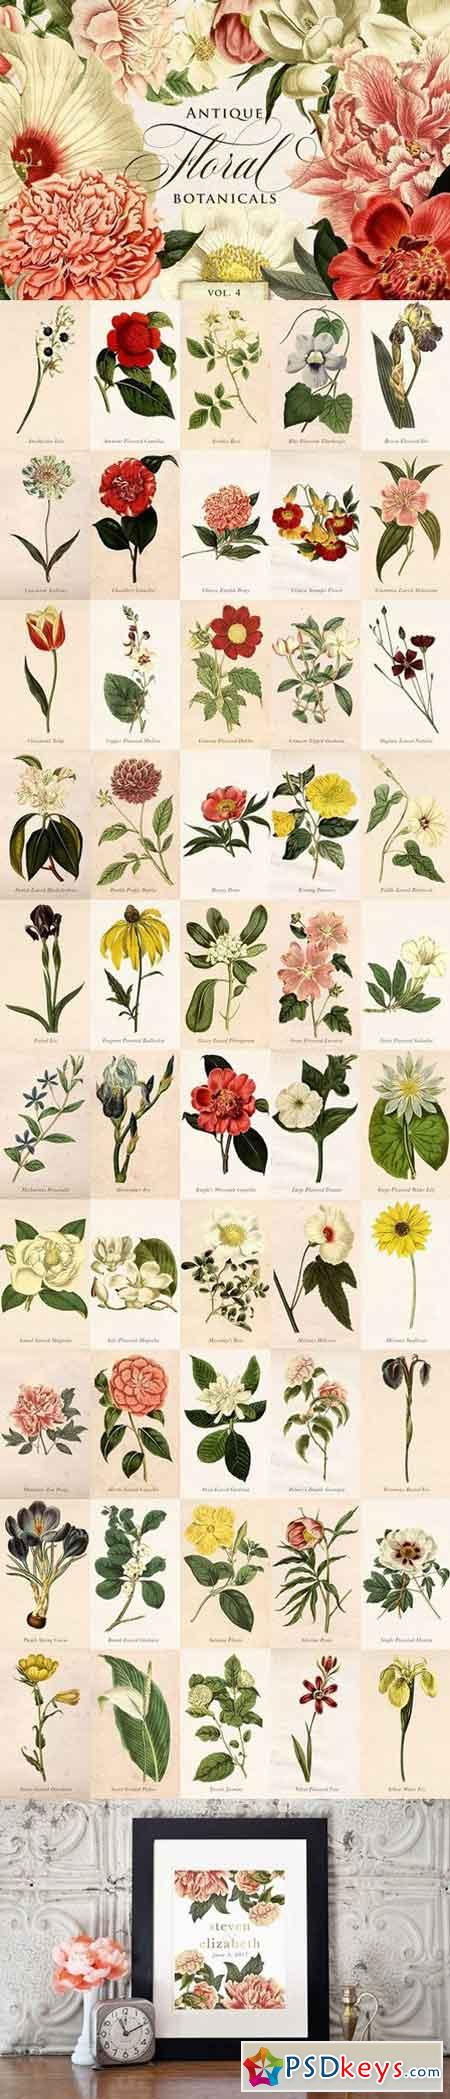 Antique Floral Botanical Graphics 4 1711942